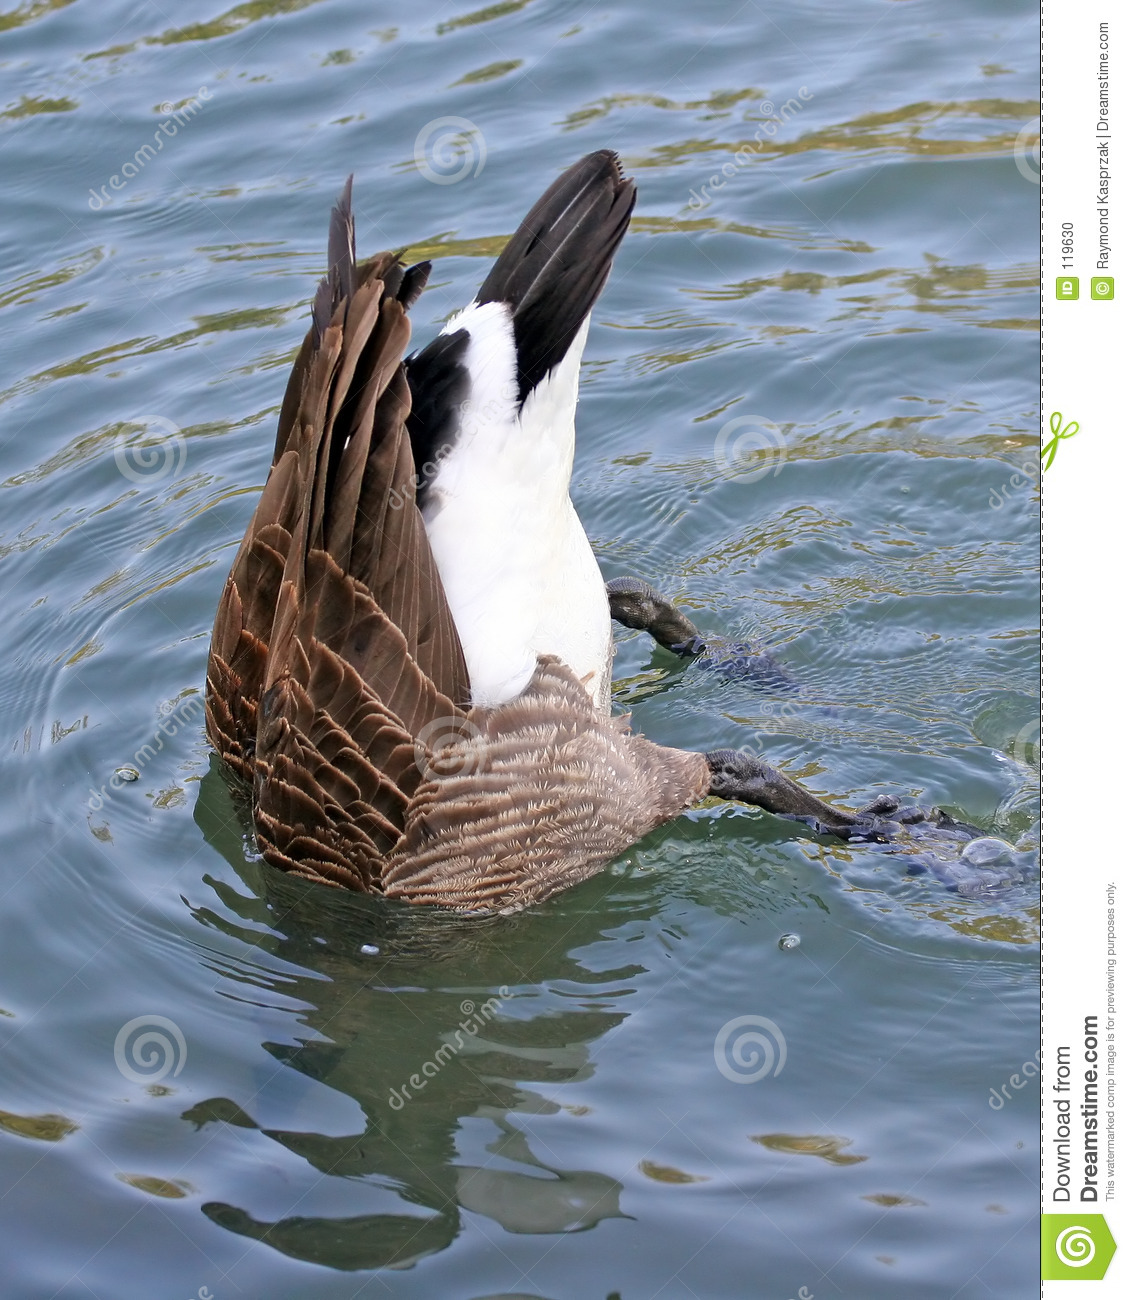 Download Bottoms Up stock photo. Image of bird, bottom, submerged - 119630